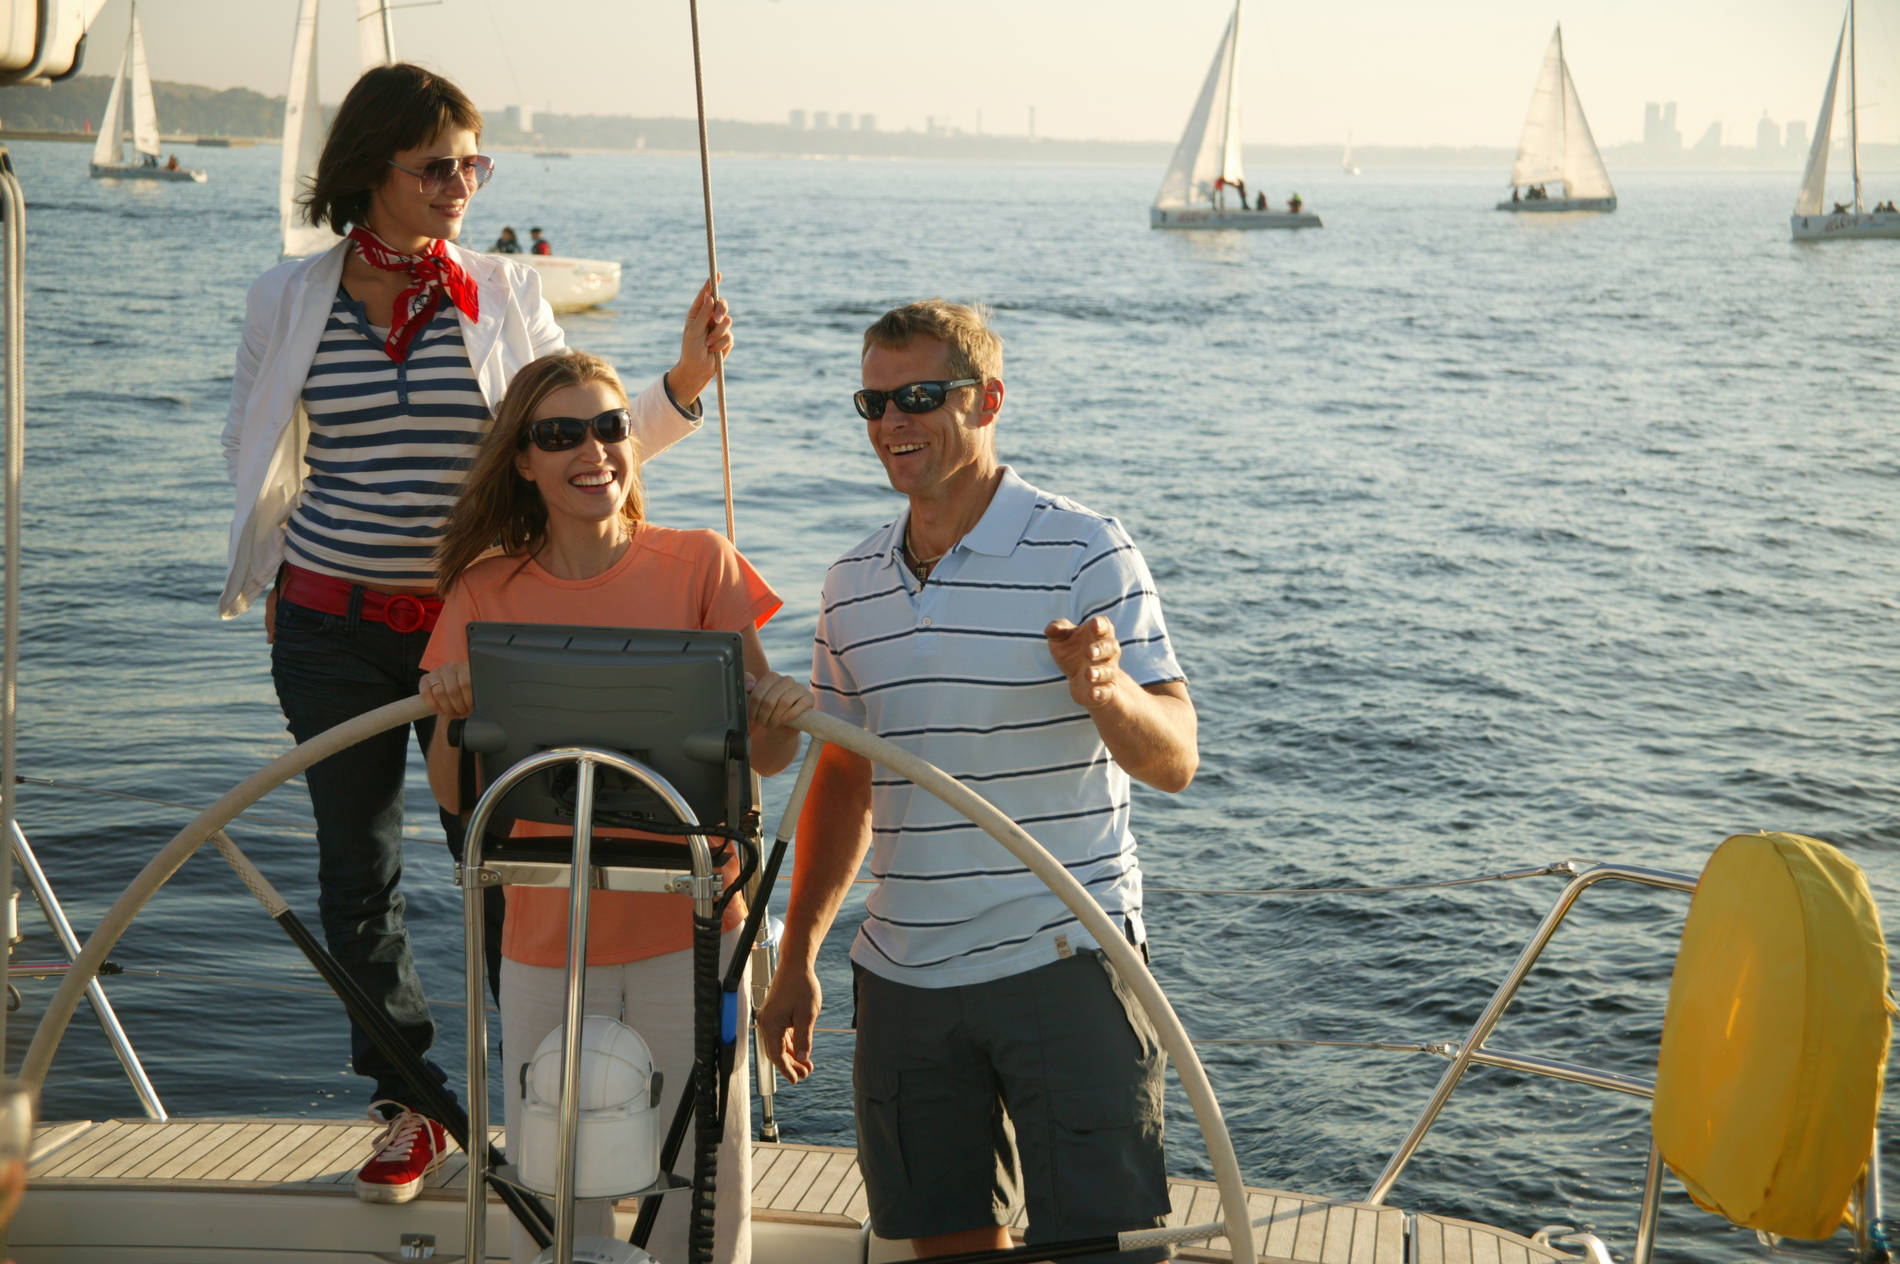 People sailing on a yacht at the Pirita harbour in Tallinn, Estonia